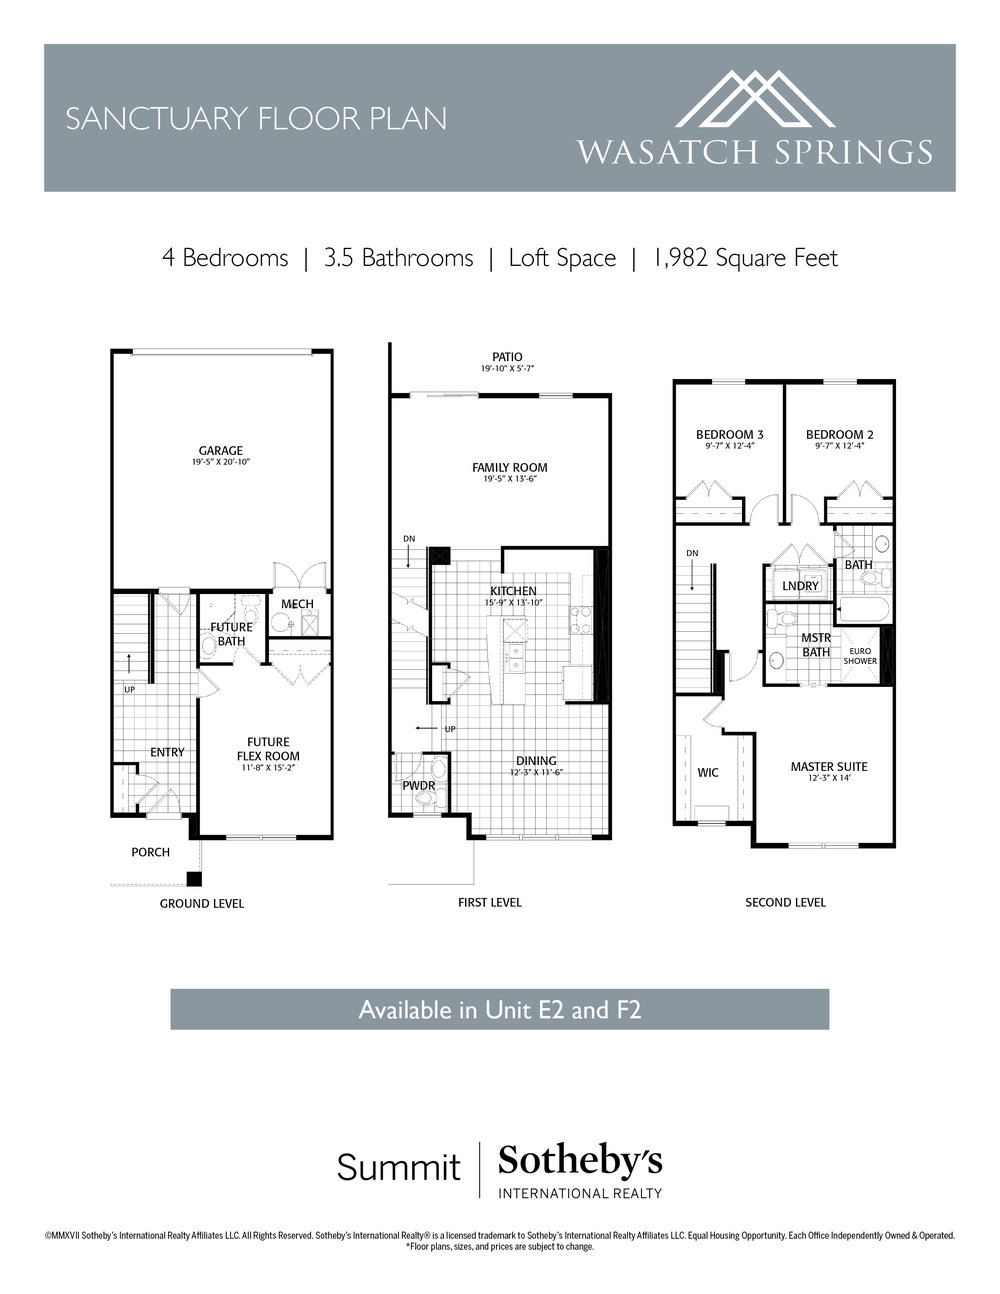 Wasatch Springs Inserts - Sanctuary Floorplan.jpg